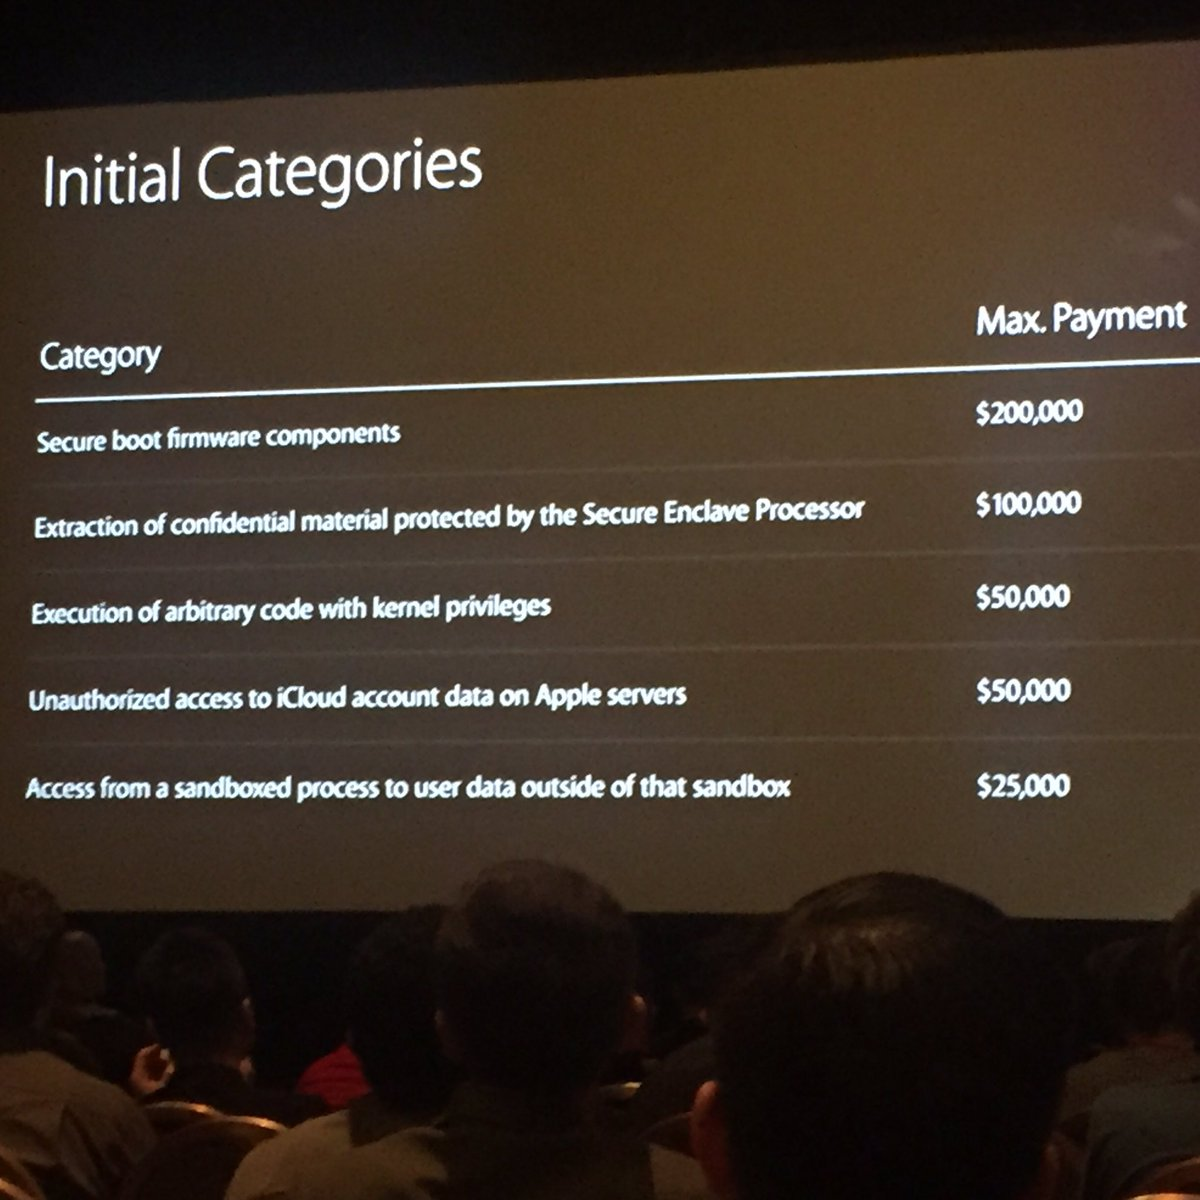 Apple just announced their first security bounty https://t.co/byaloNAkvJ